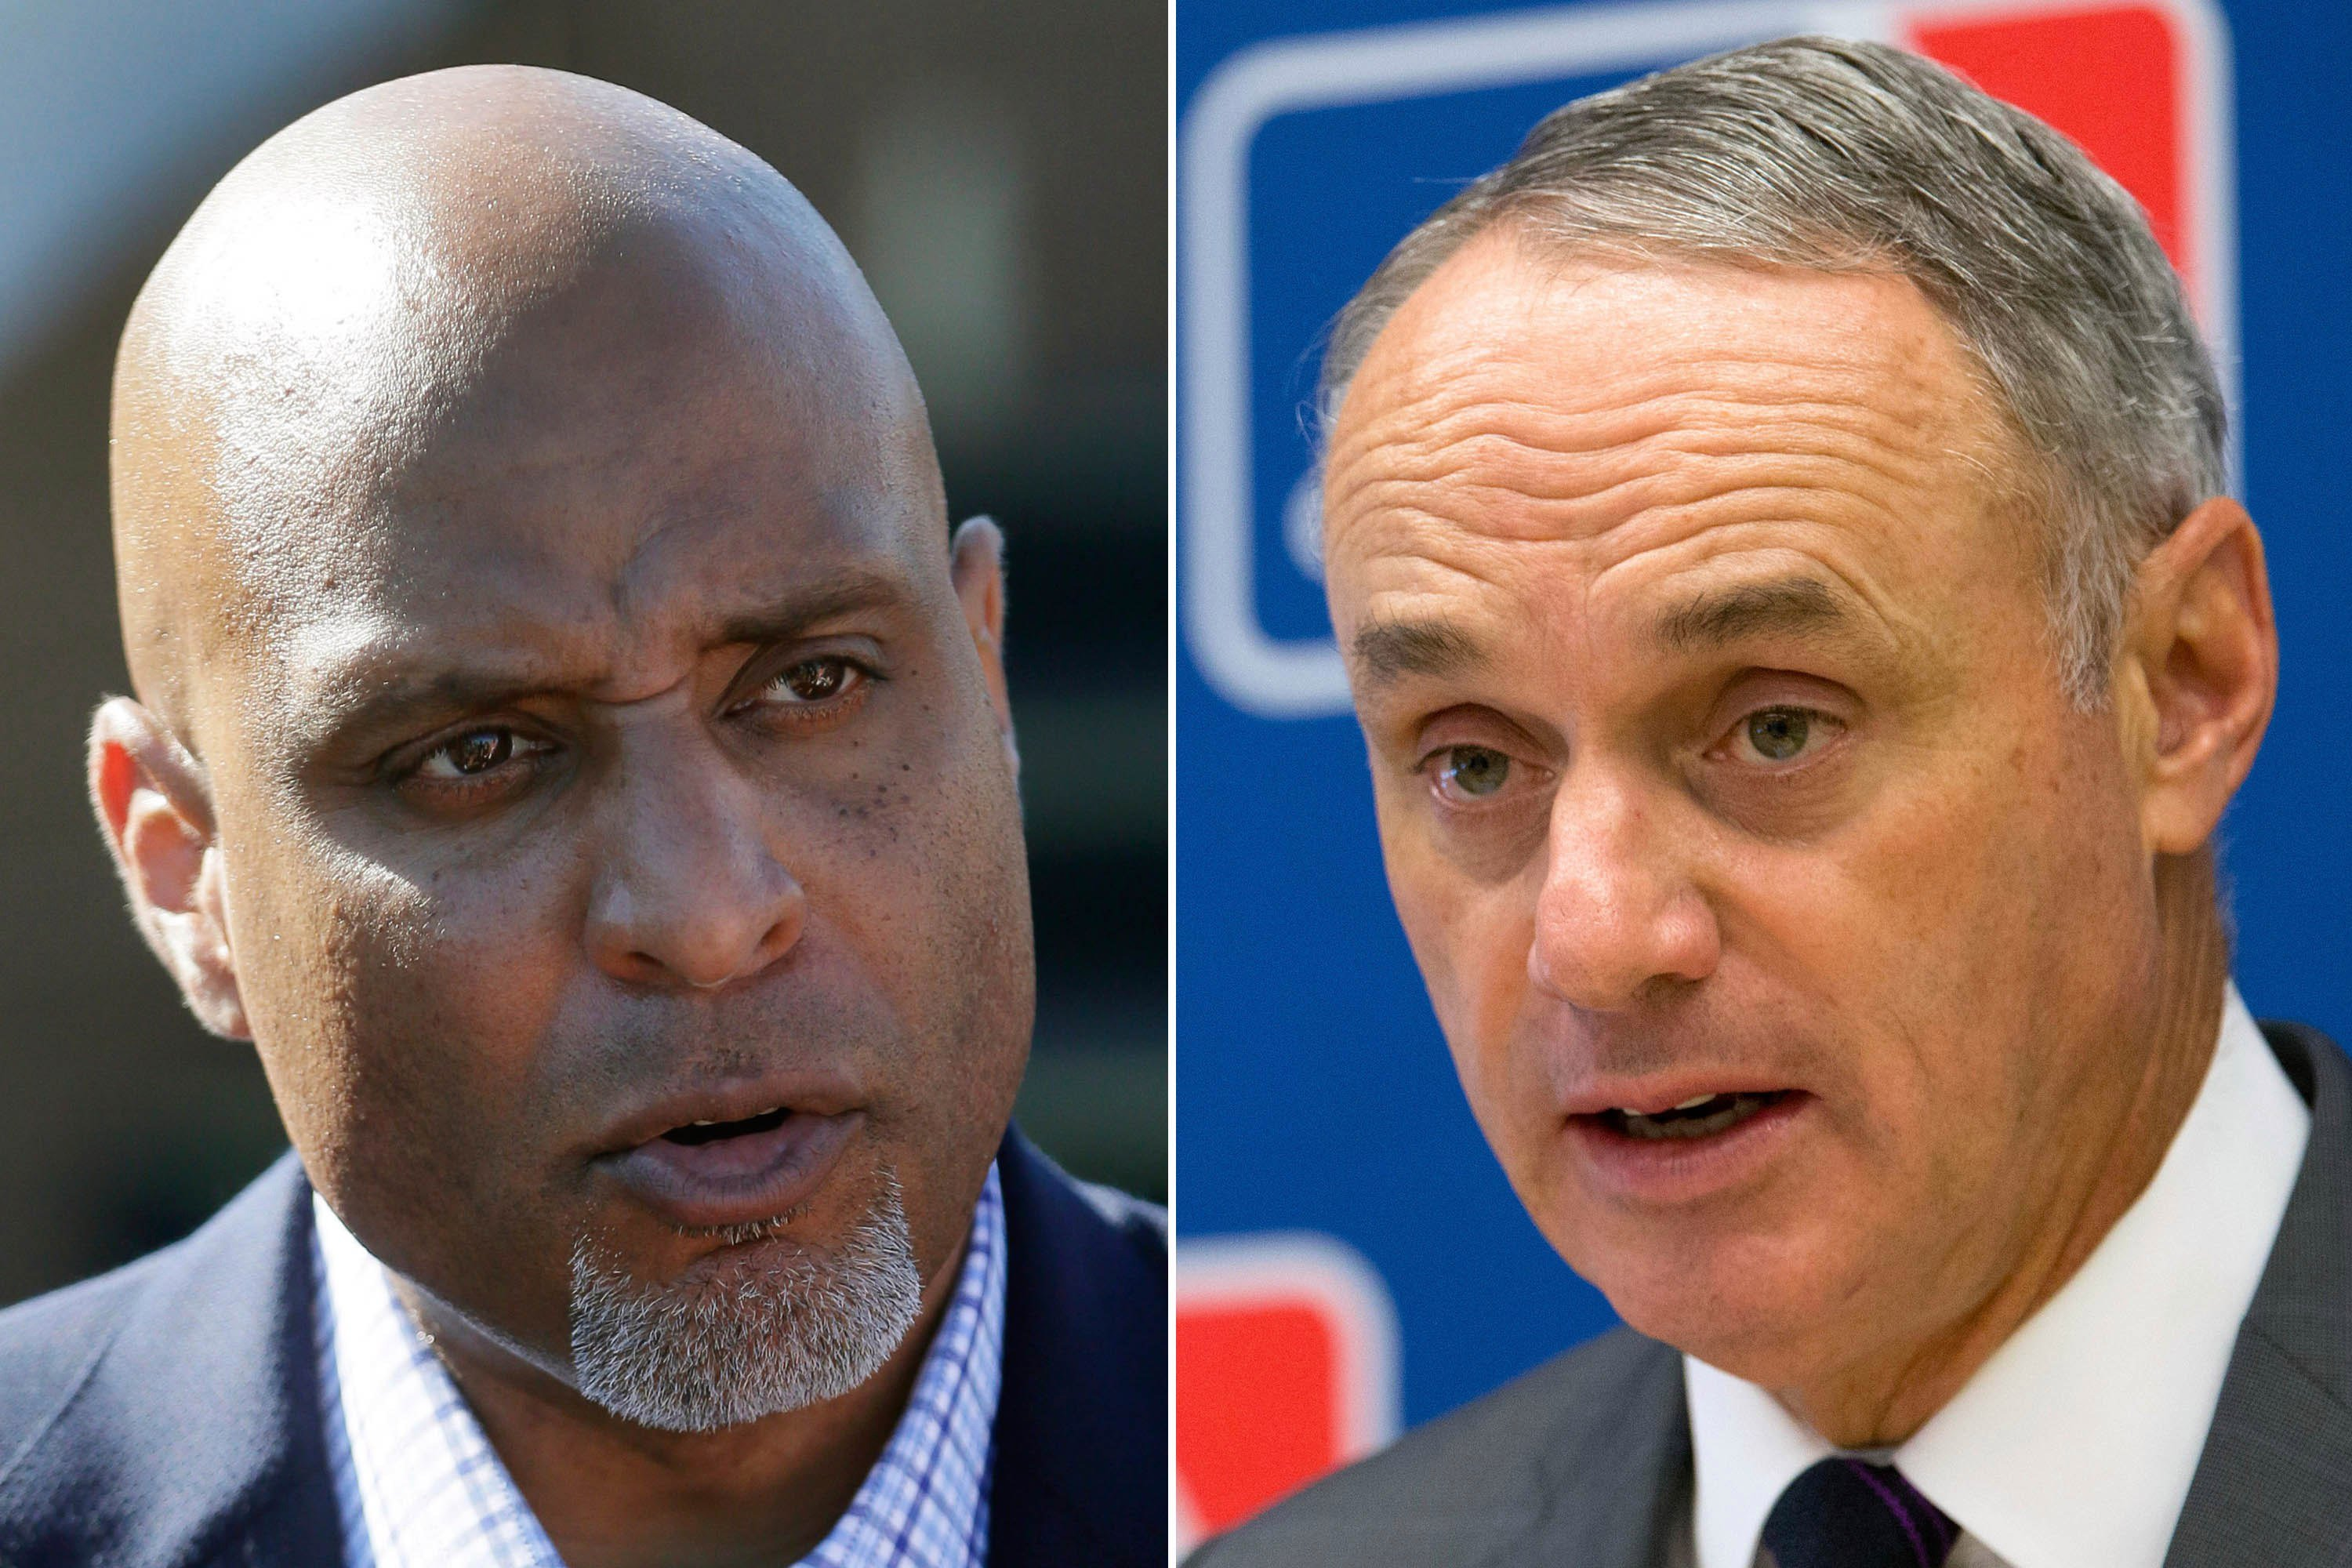 Players takes aim at tanking to escalate MLB free-agency war